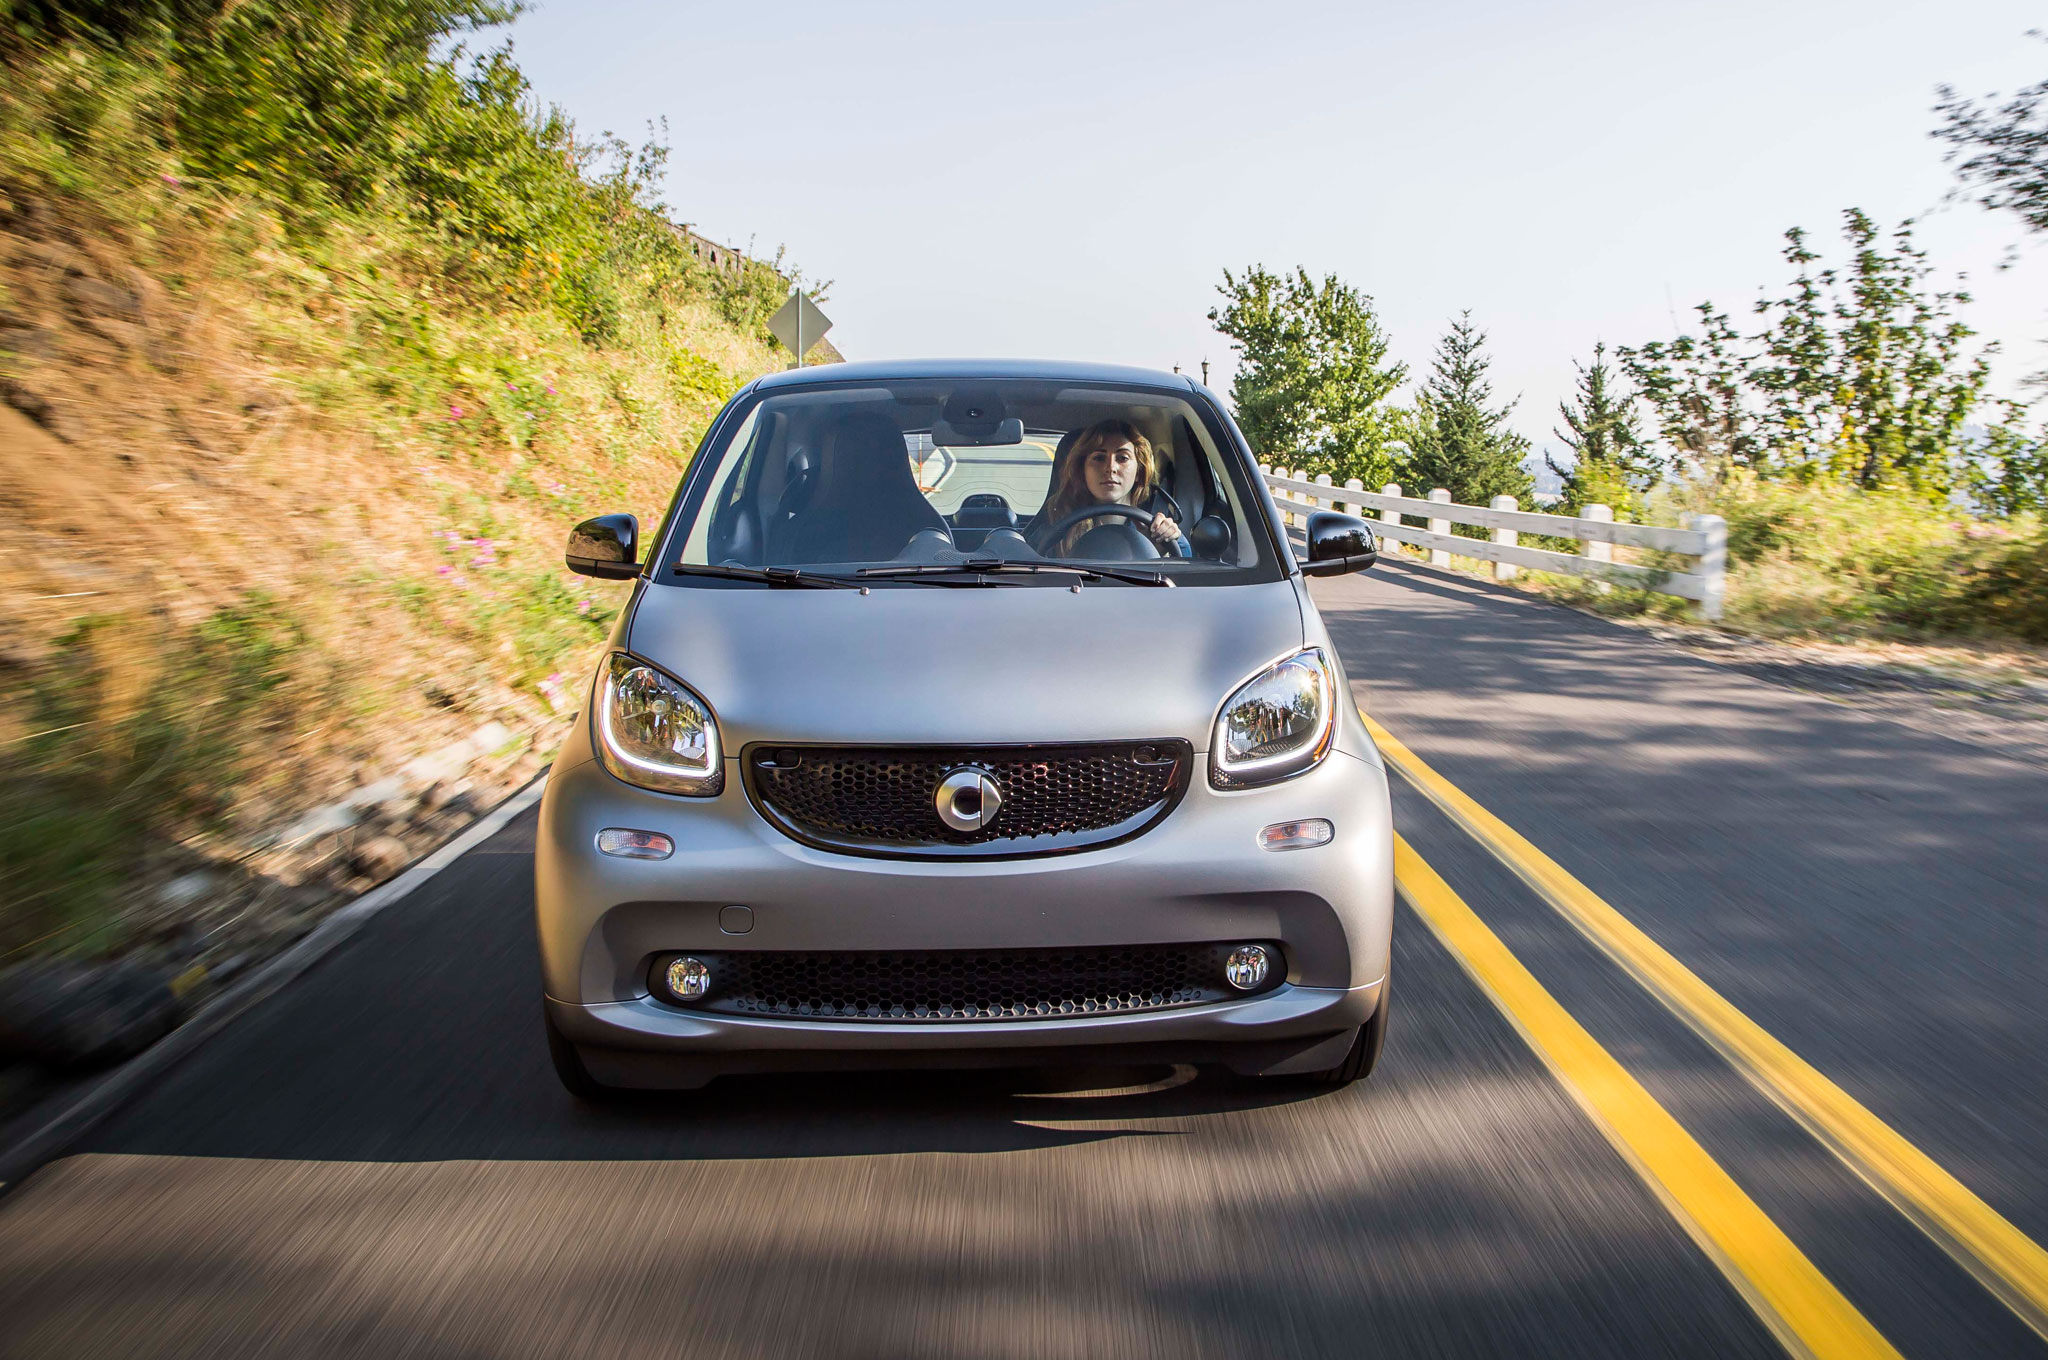 2016 Smart Fortwo Front End Design (Photo 3 of 17)